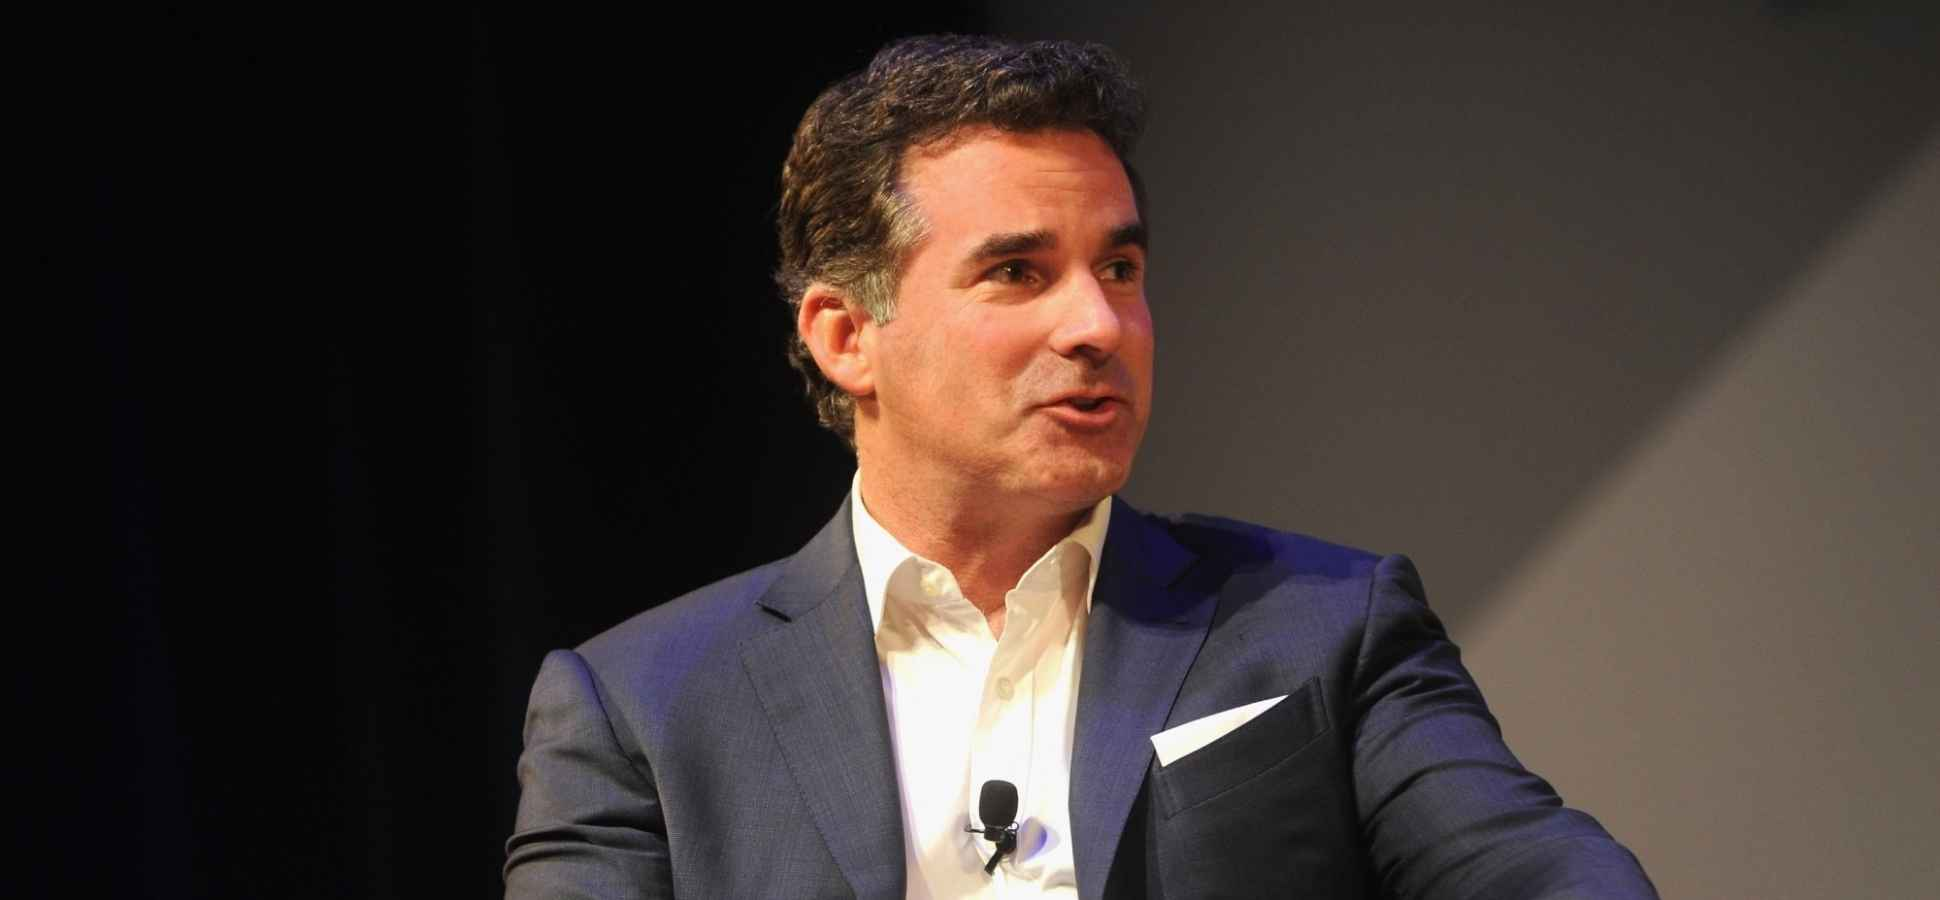 Discussion on this topic: Under Armour CEO Kevin Planks wont name , under-armour-ceo-kevin-planks-wont-name/